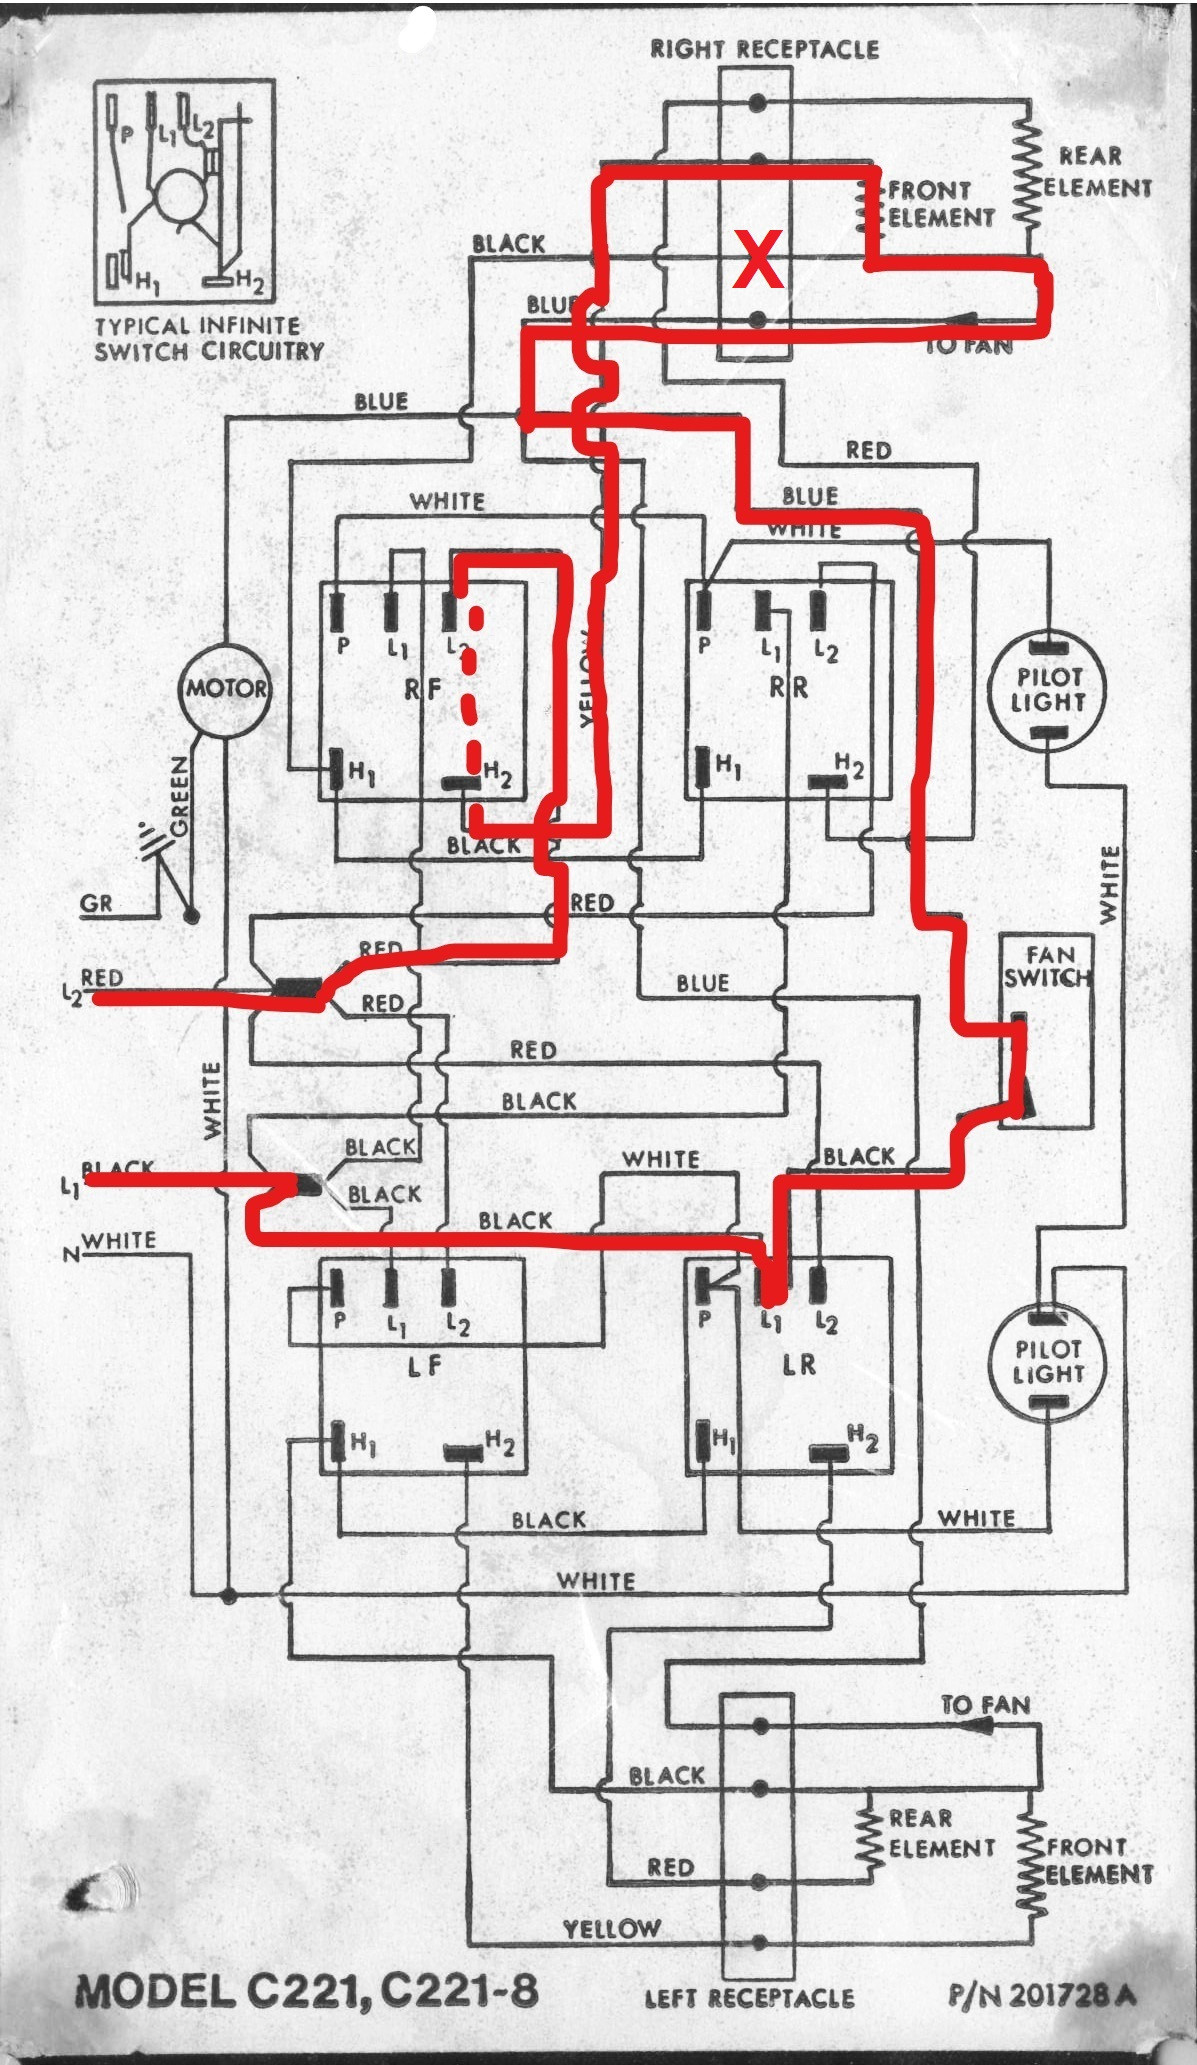 hight resolution of c221 wiring diagram with current flow illustrated